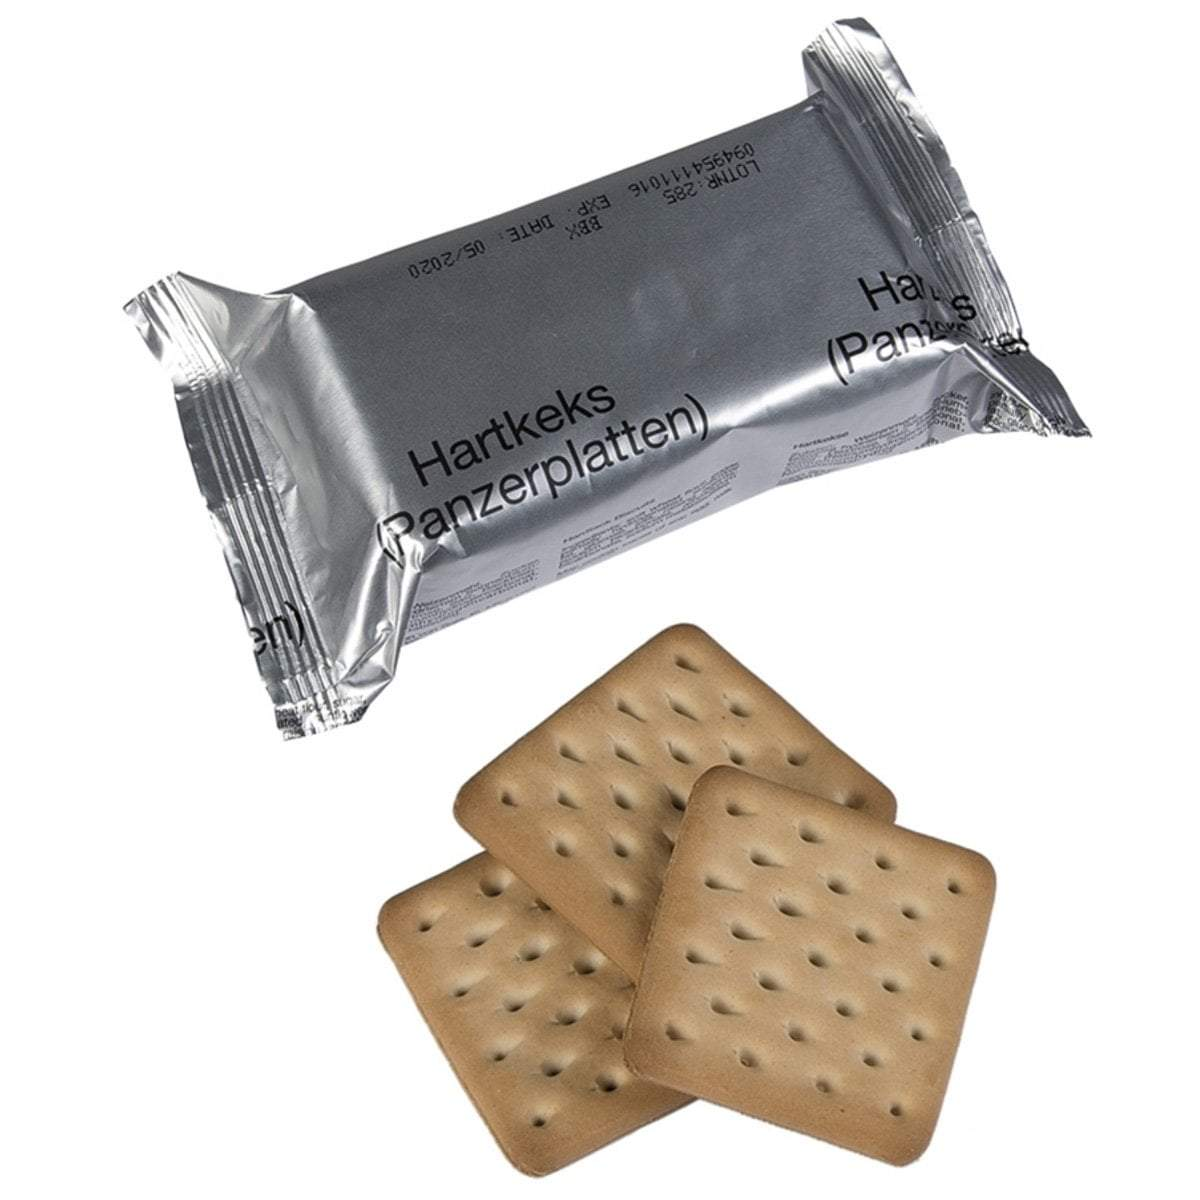 German Army BW Crackers (Panzerplatte) | UKMCPro